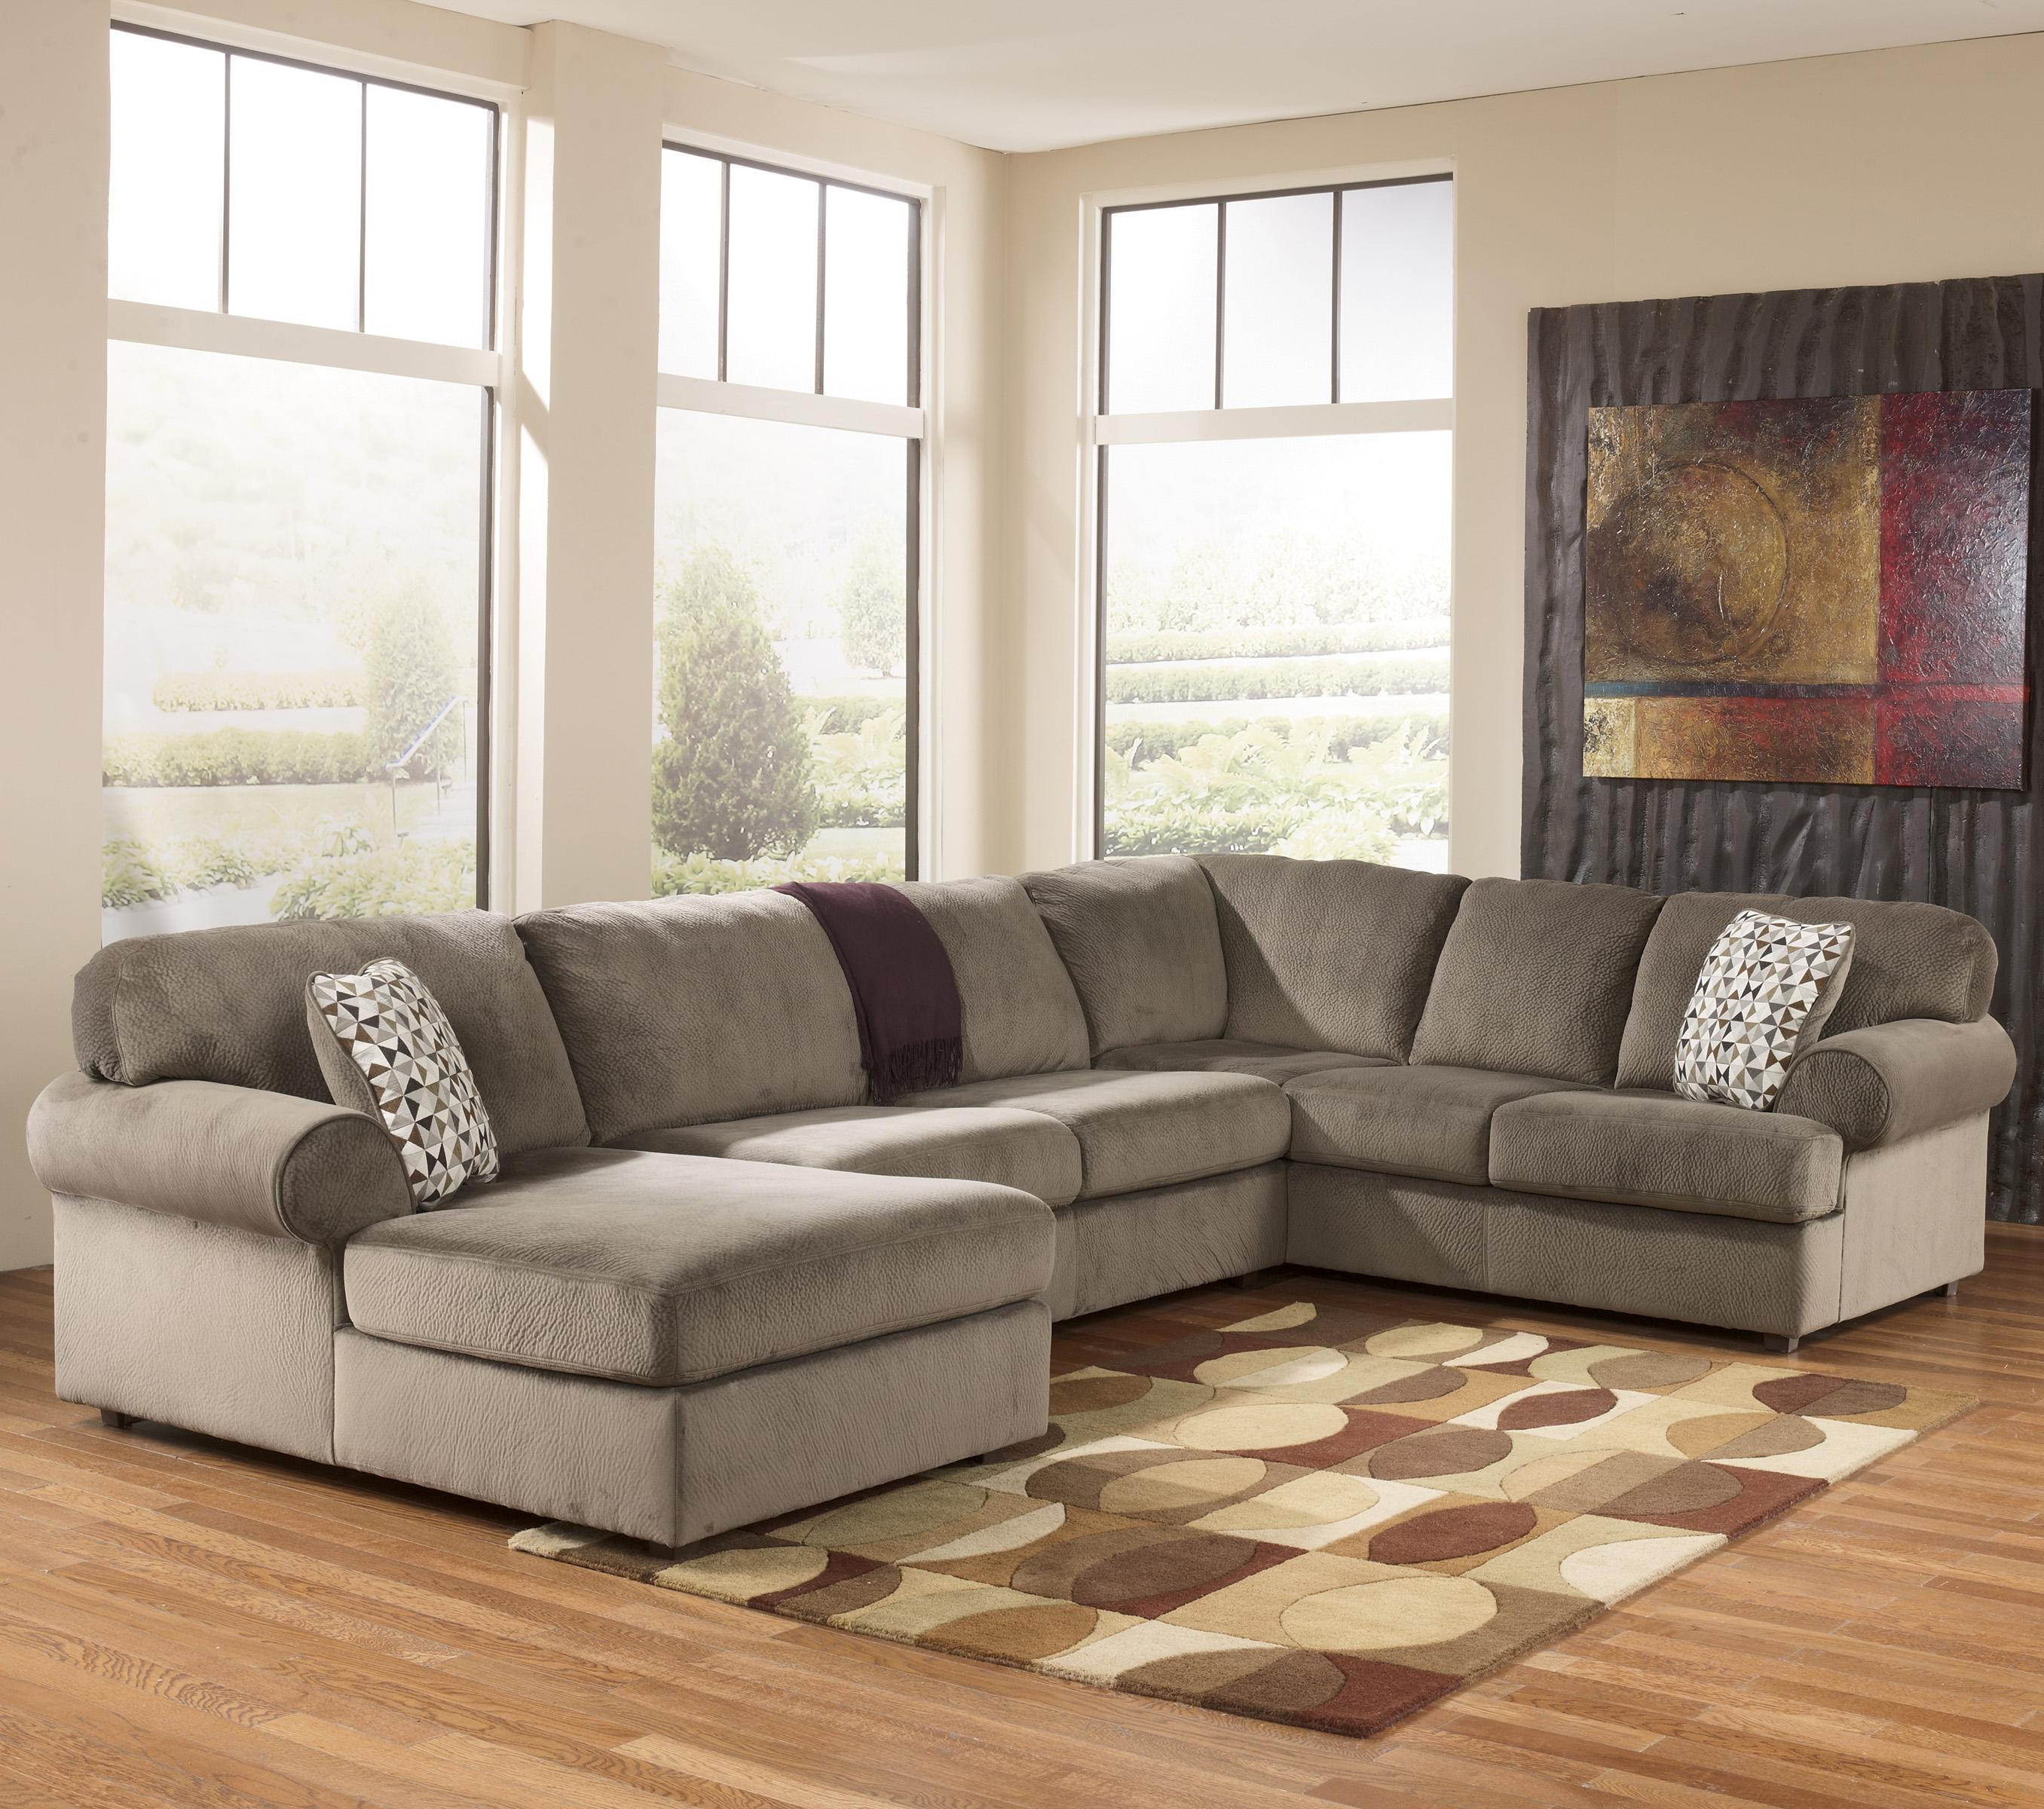 Laf Chaise Sectional Sofa (View 7 of 20)